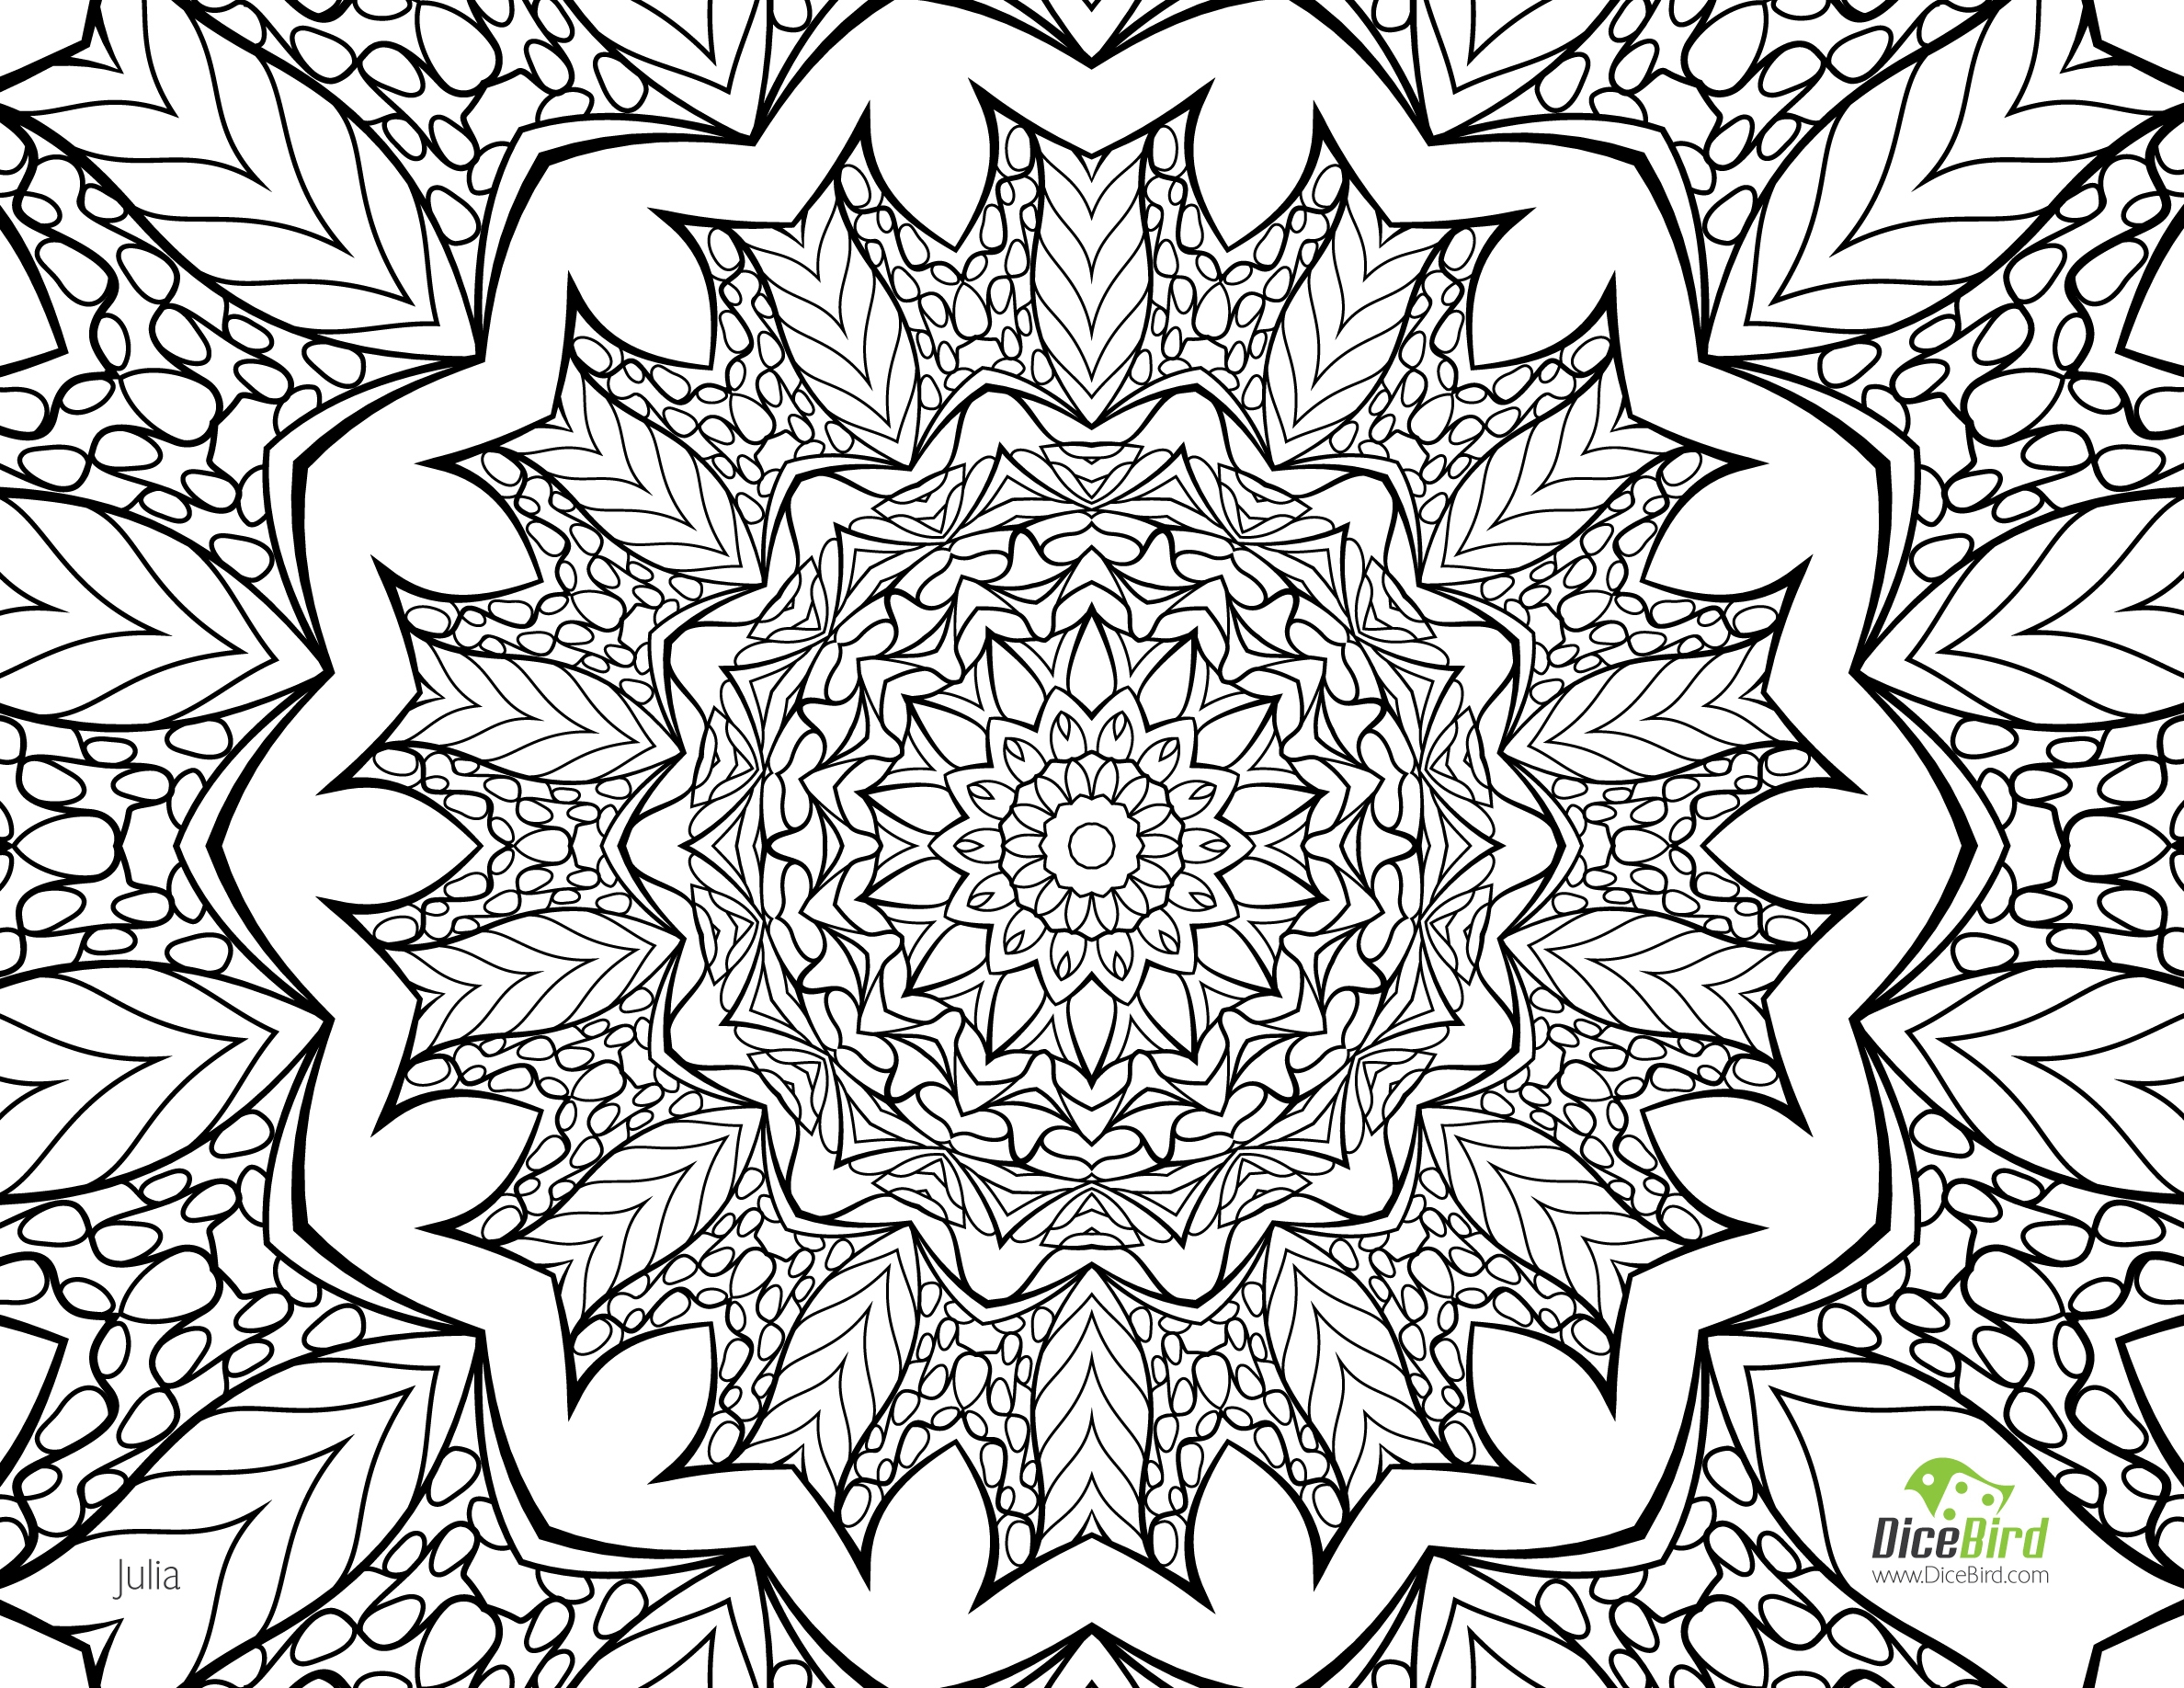 Free Printable Coloring Pages For Adults Only - Yintan Serapportantà - Free Printable Coloring Pages For Adults Only